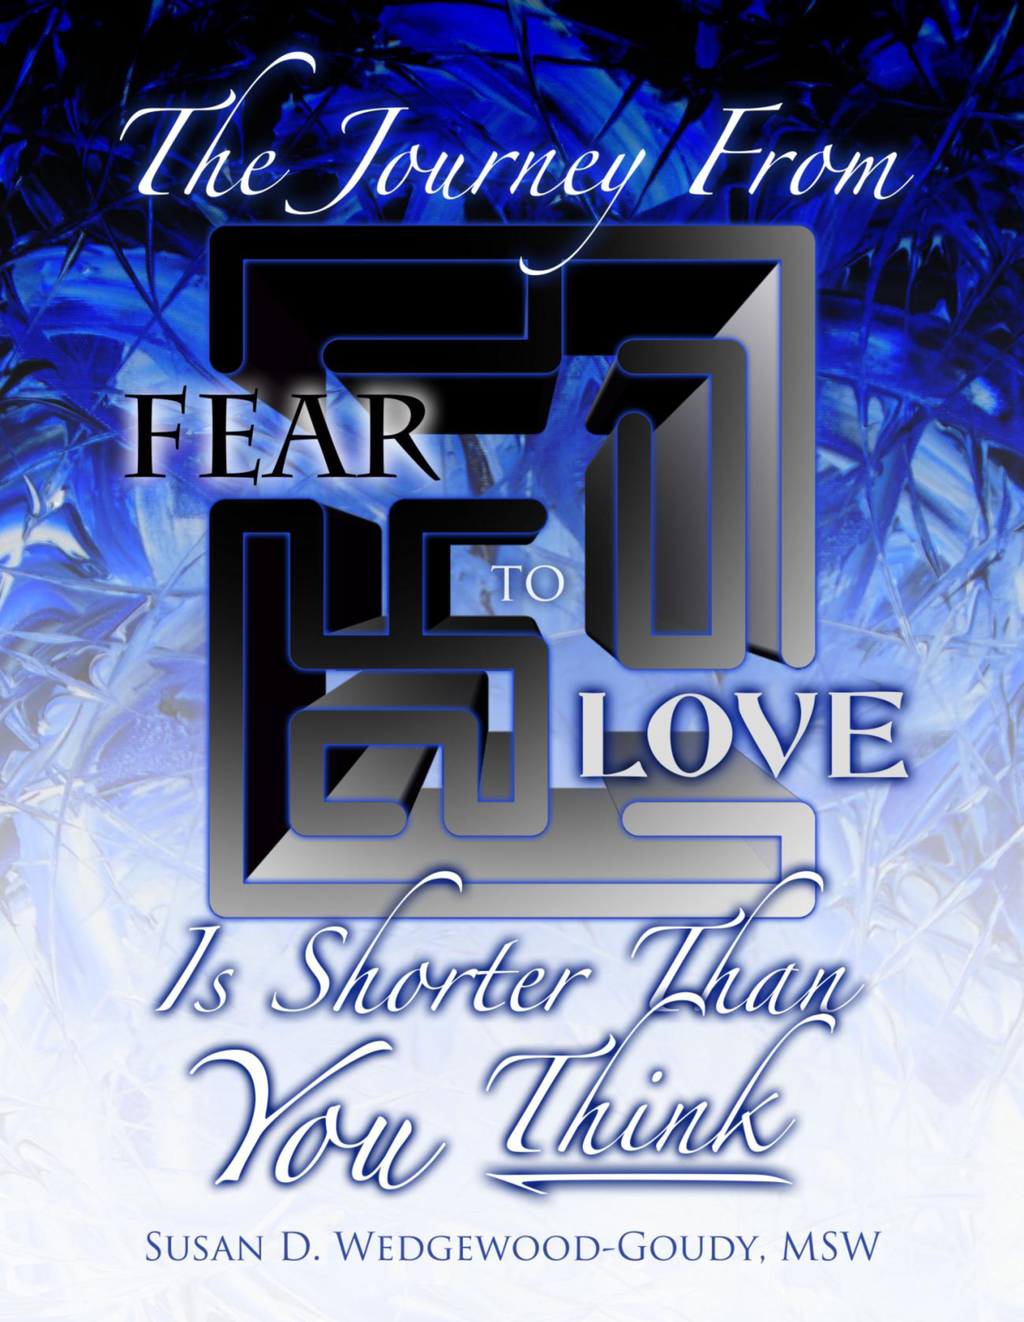 The Journey From Fear To Love Is Shorter Than YOU think